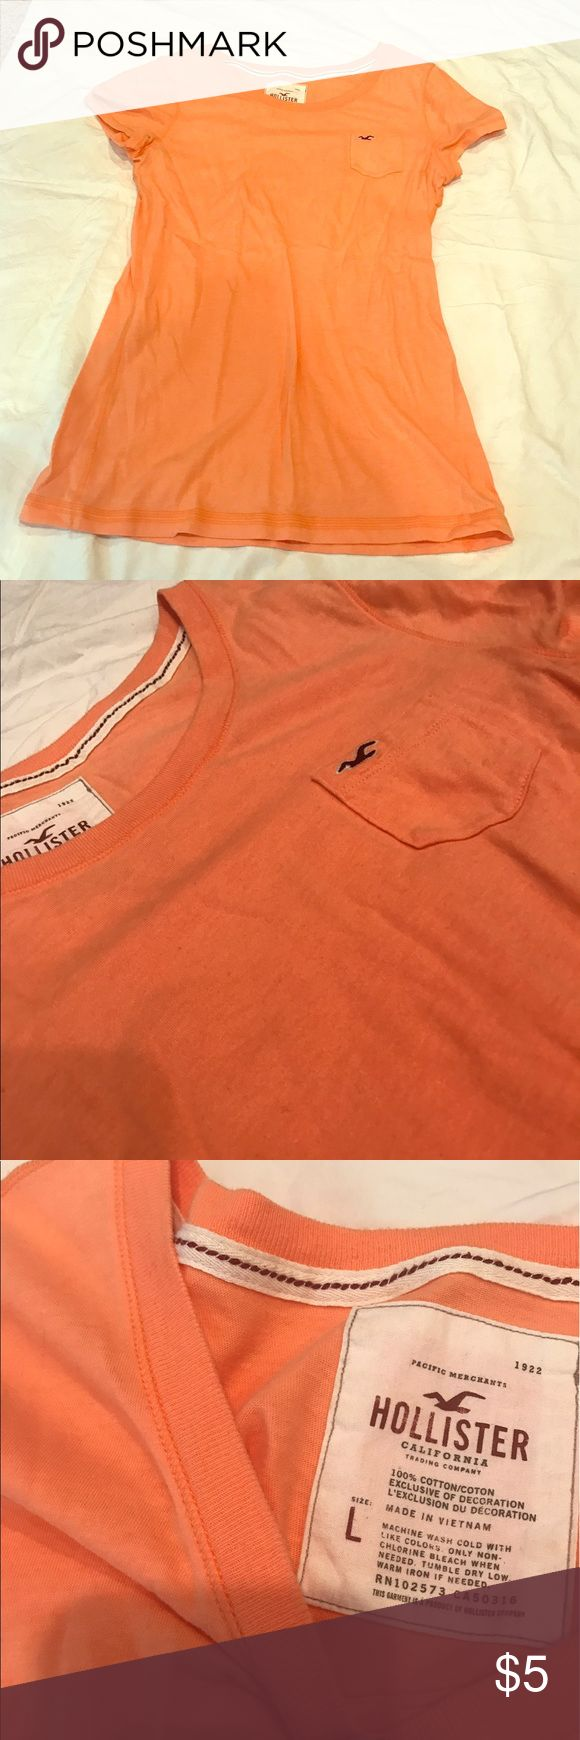 Orange Hollister tshirt True orange Hollister tshirt with pocket on left side. Small hole at bottom in from visible in last picture. Barely noticeable. Same or next day shipping. Hollister Tops Tees - Short Sleeve